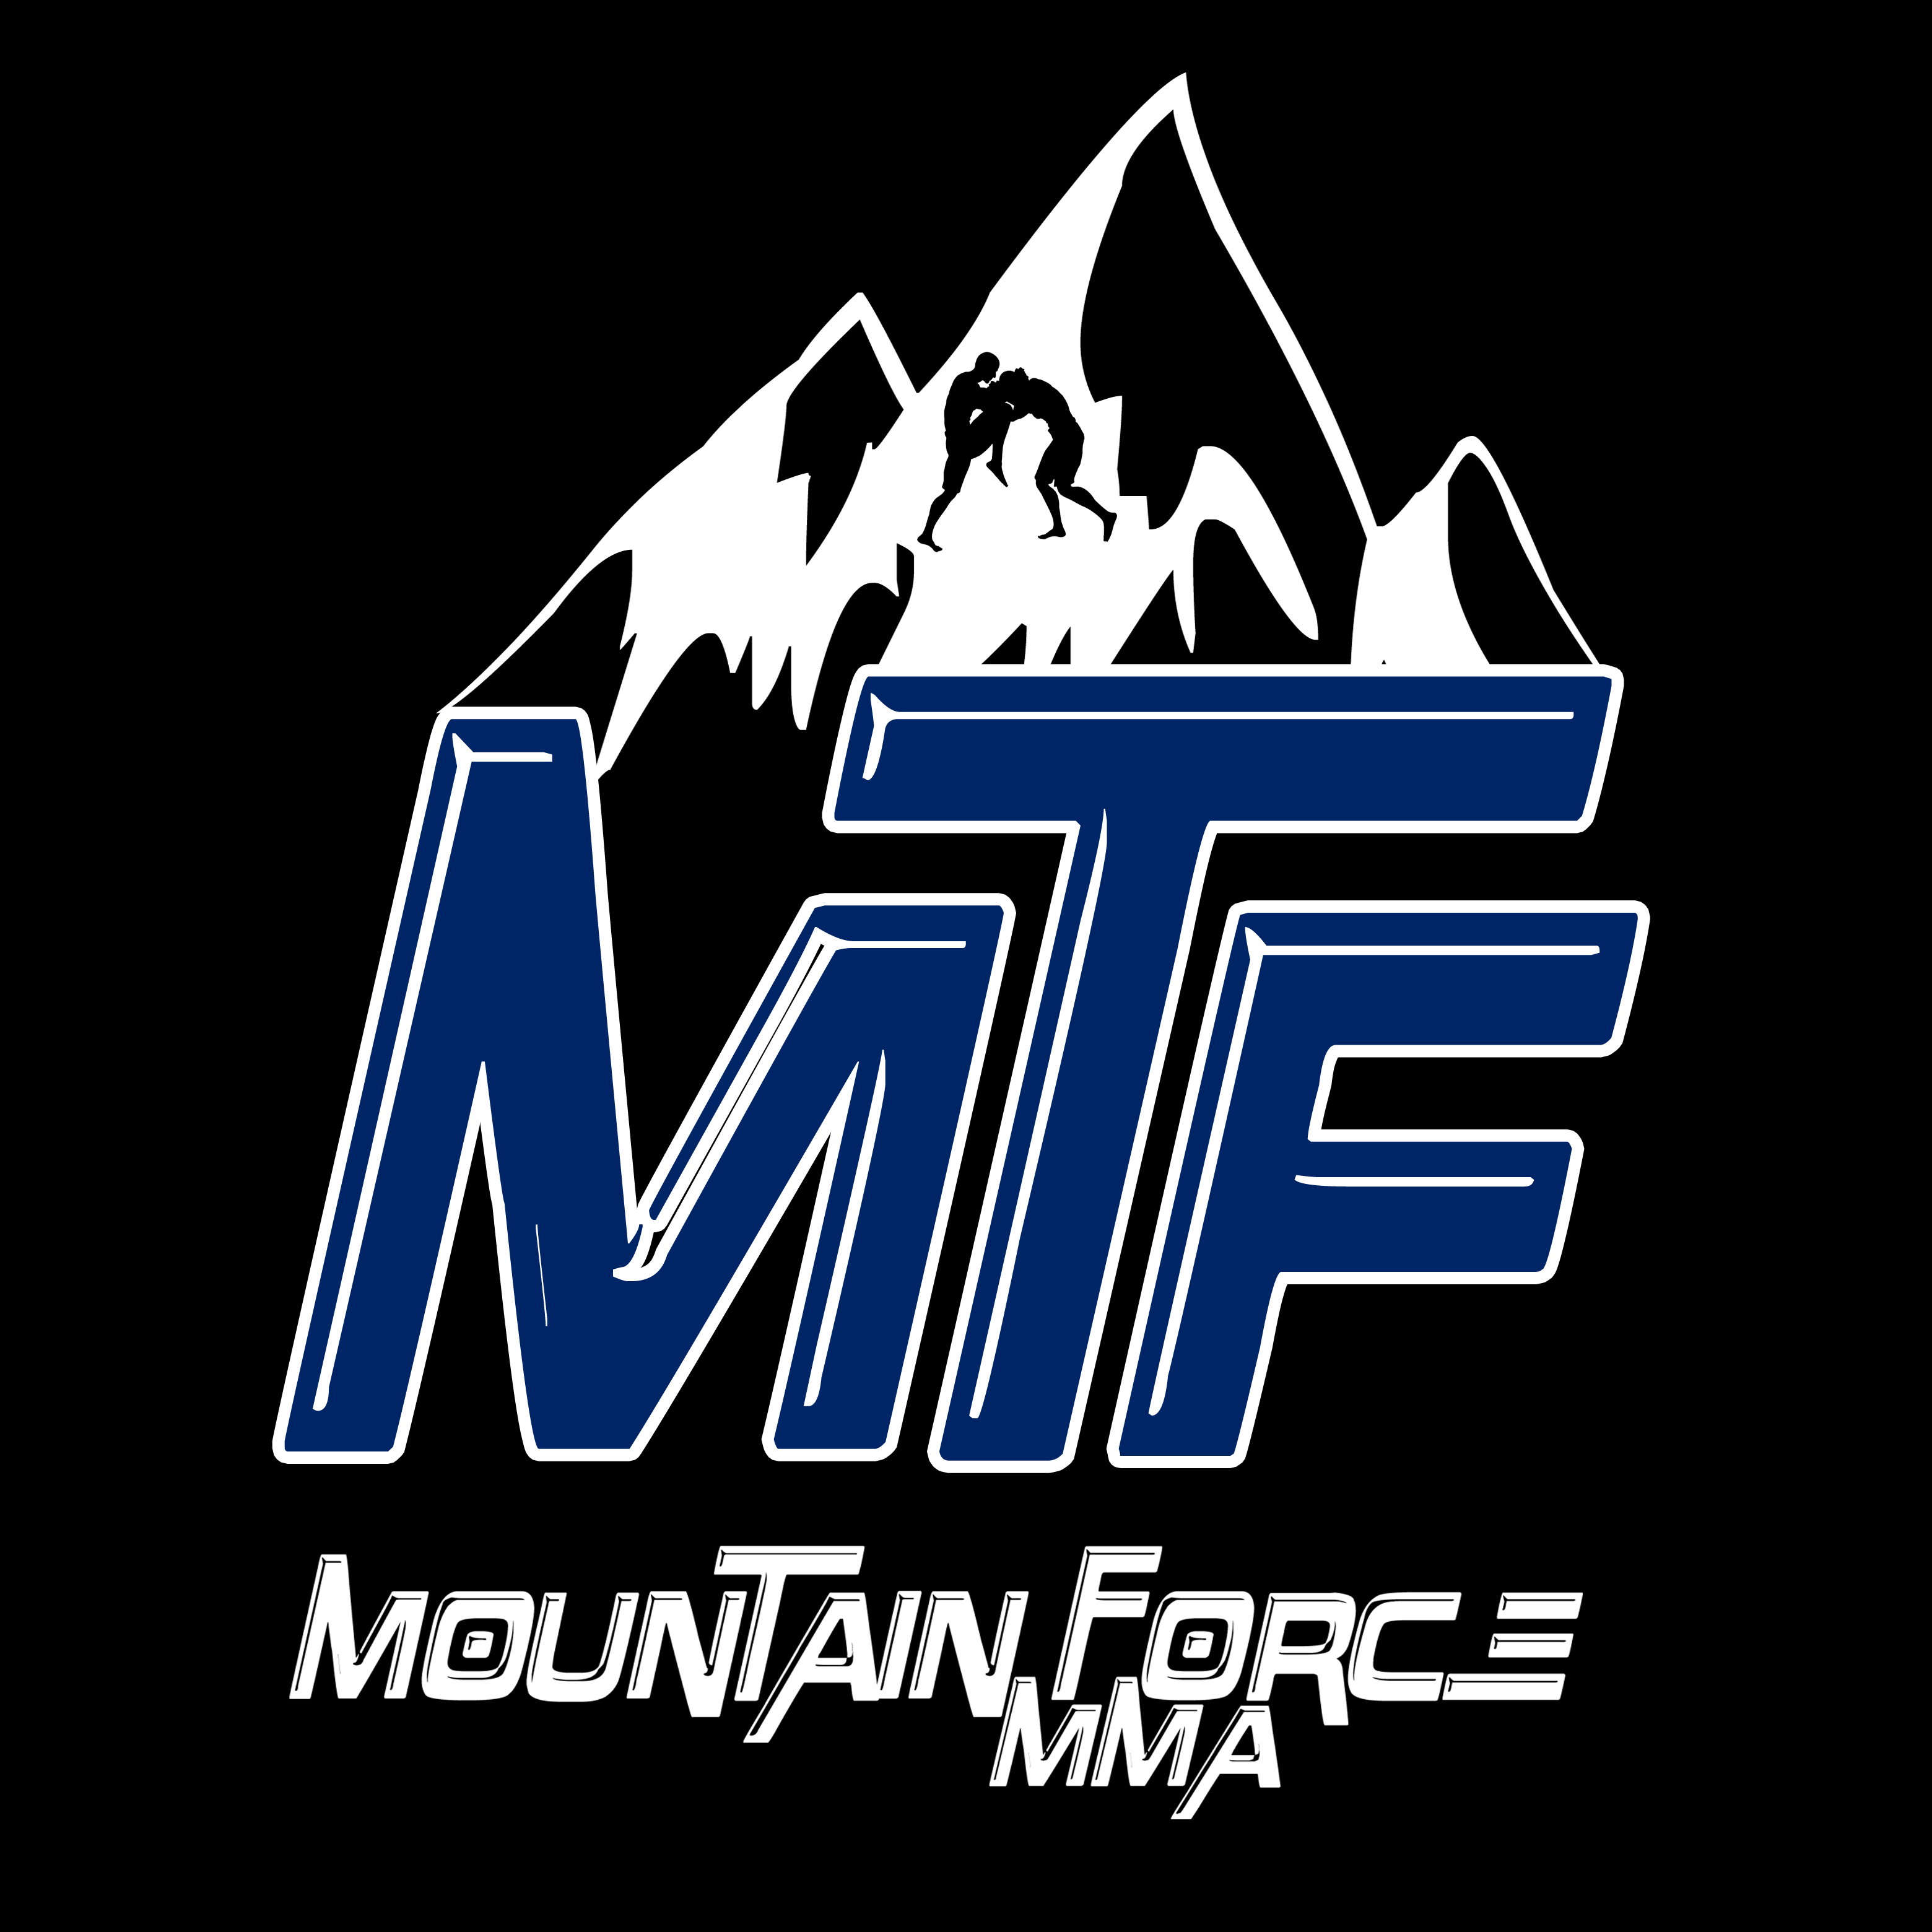 MOUNTAIN FORCE LOGO 5 - BLUE copy